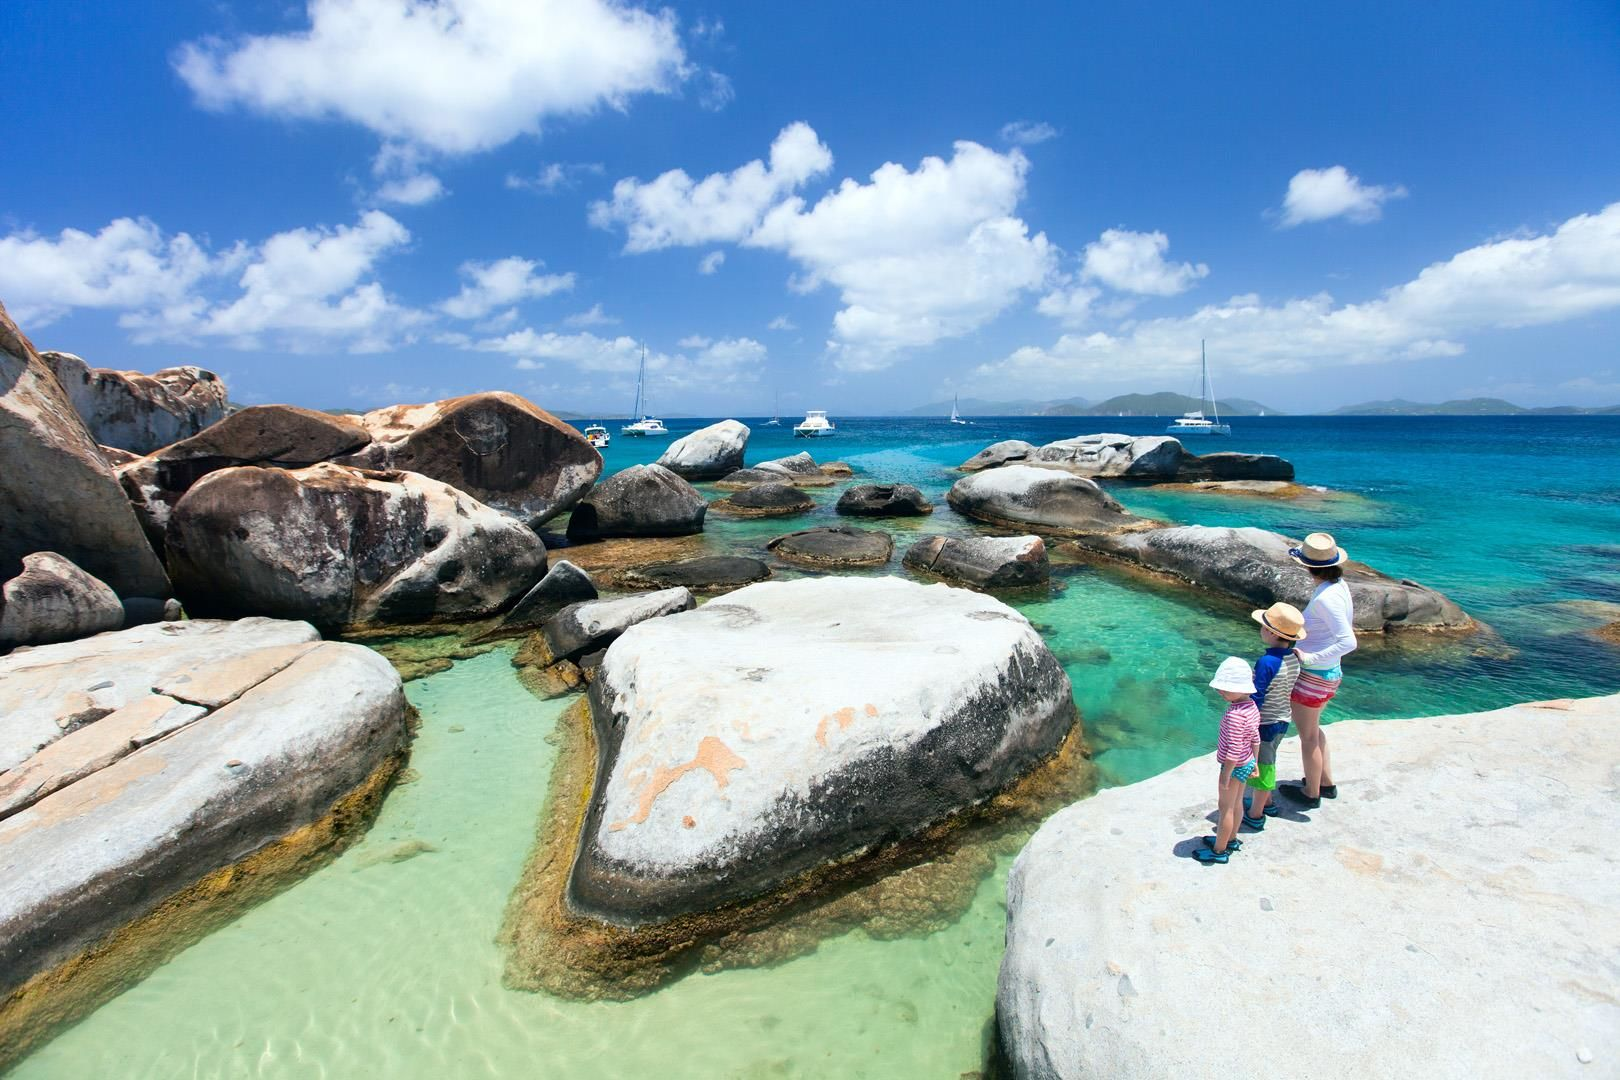 Vacations in the British Virgin Islands